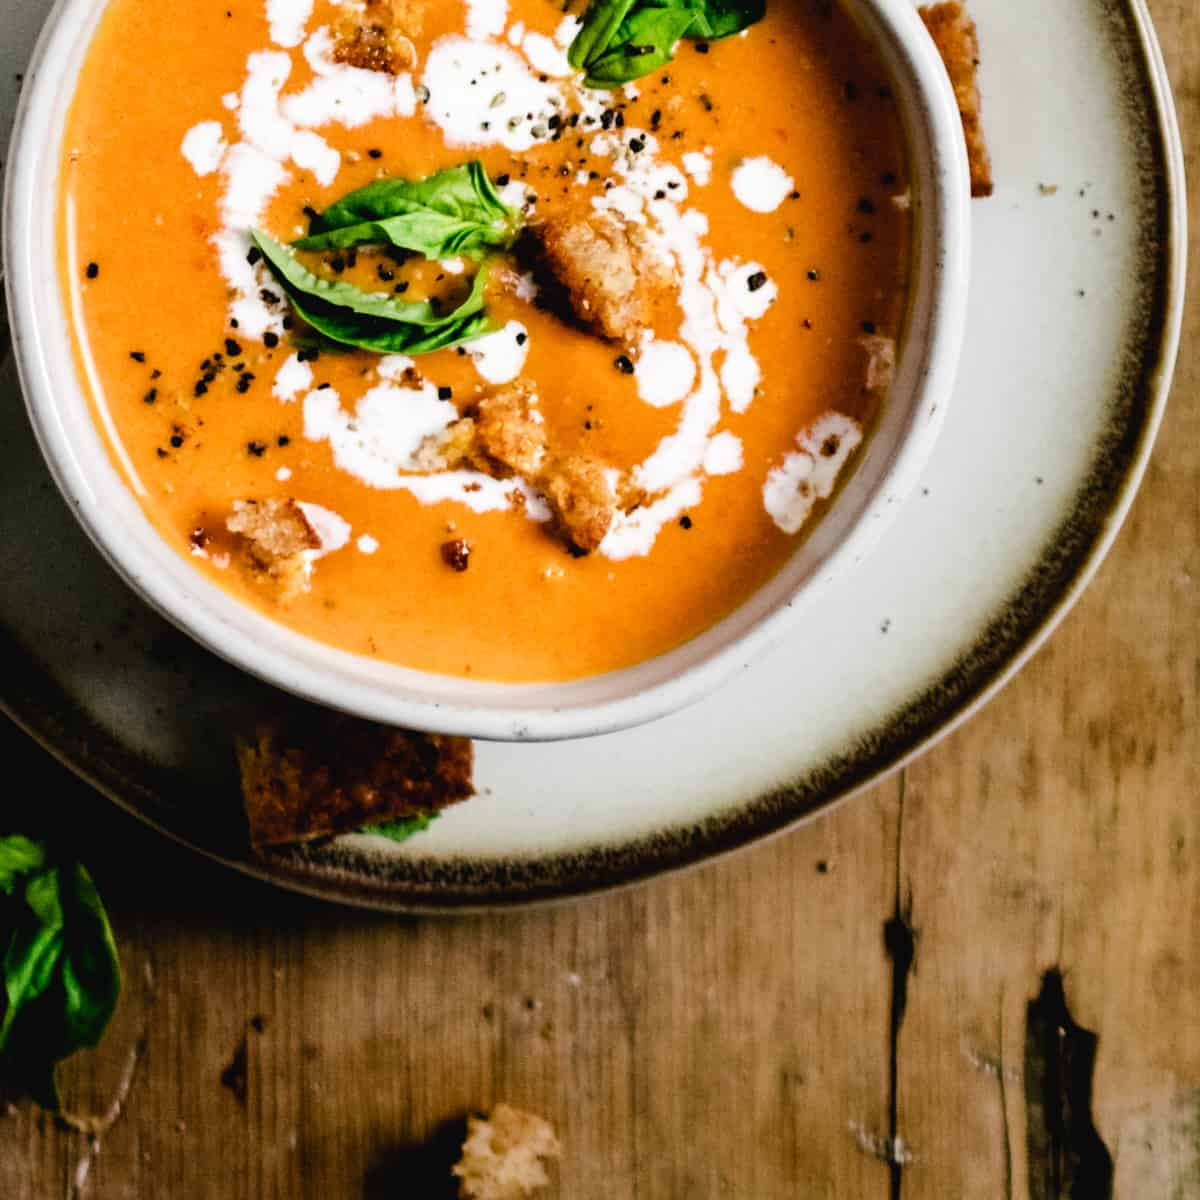 Bowl of tomato soup topped with fresh basil leaves and swirl of cream on plate and wooden board.